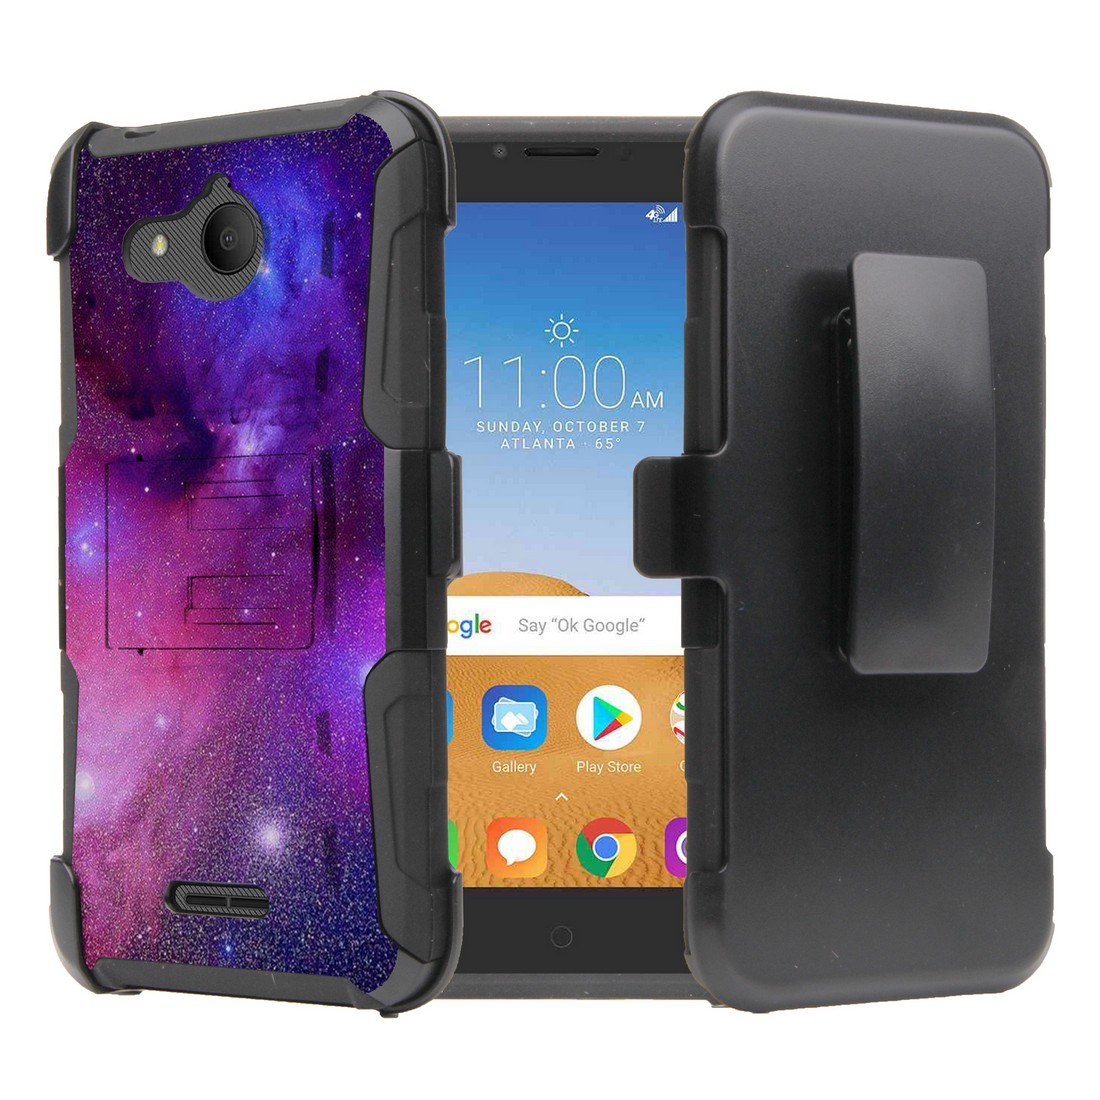 Rugged Series Case Compatible with Alcatel Tetra - Heavy Duty Armor Cover Case with Built-in Stand and Swivel Belt Clip Holster for Alcatel Tetra - Purple Nebula